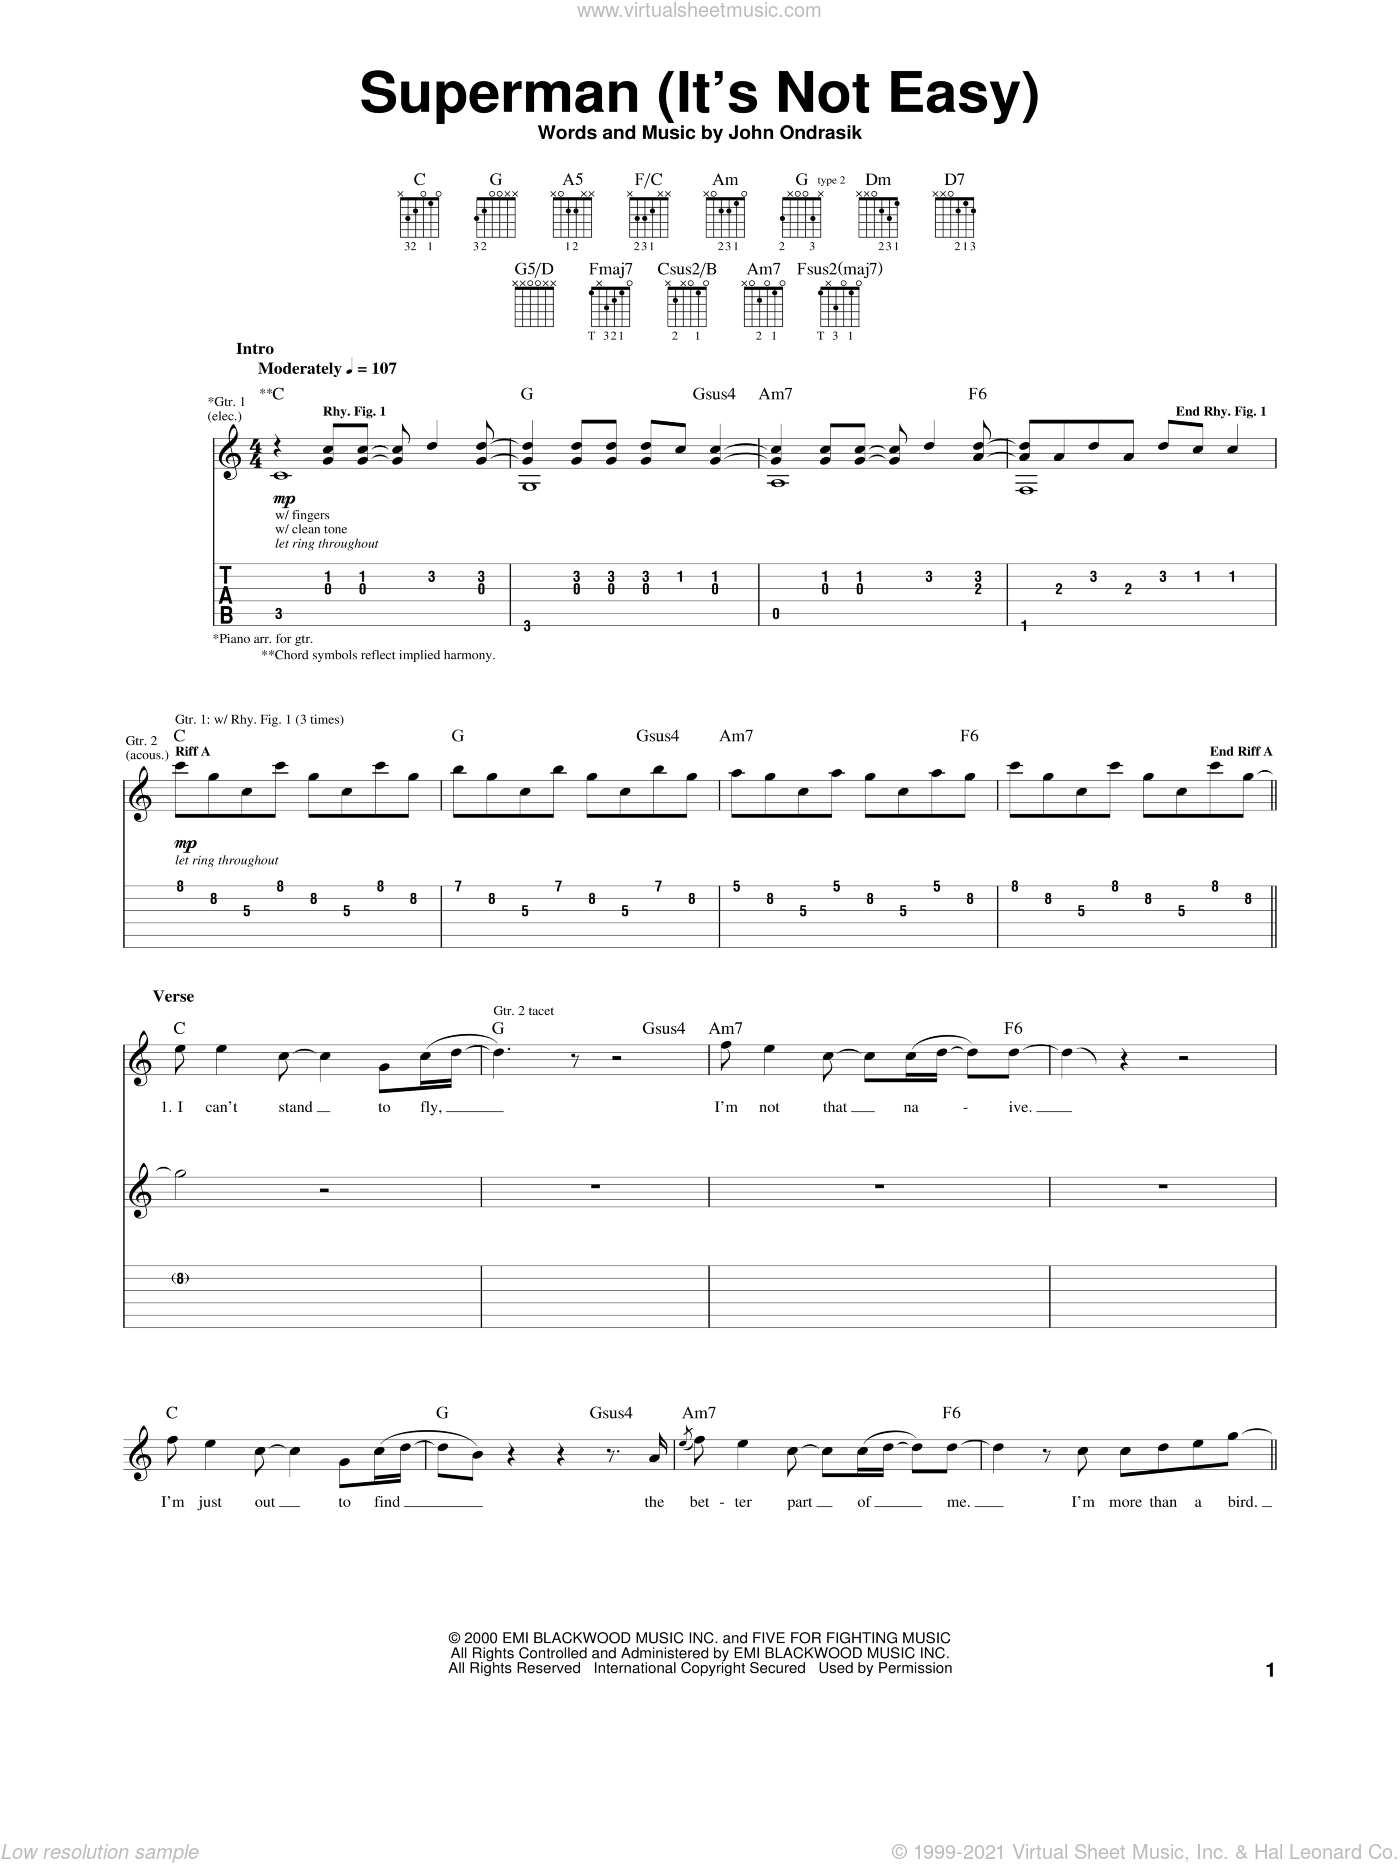 Superman (It's Not Easy) sheet music for guitar (tablature) by John Ondrasik and Five For Fighting. Score Image Preview.